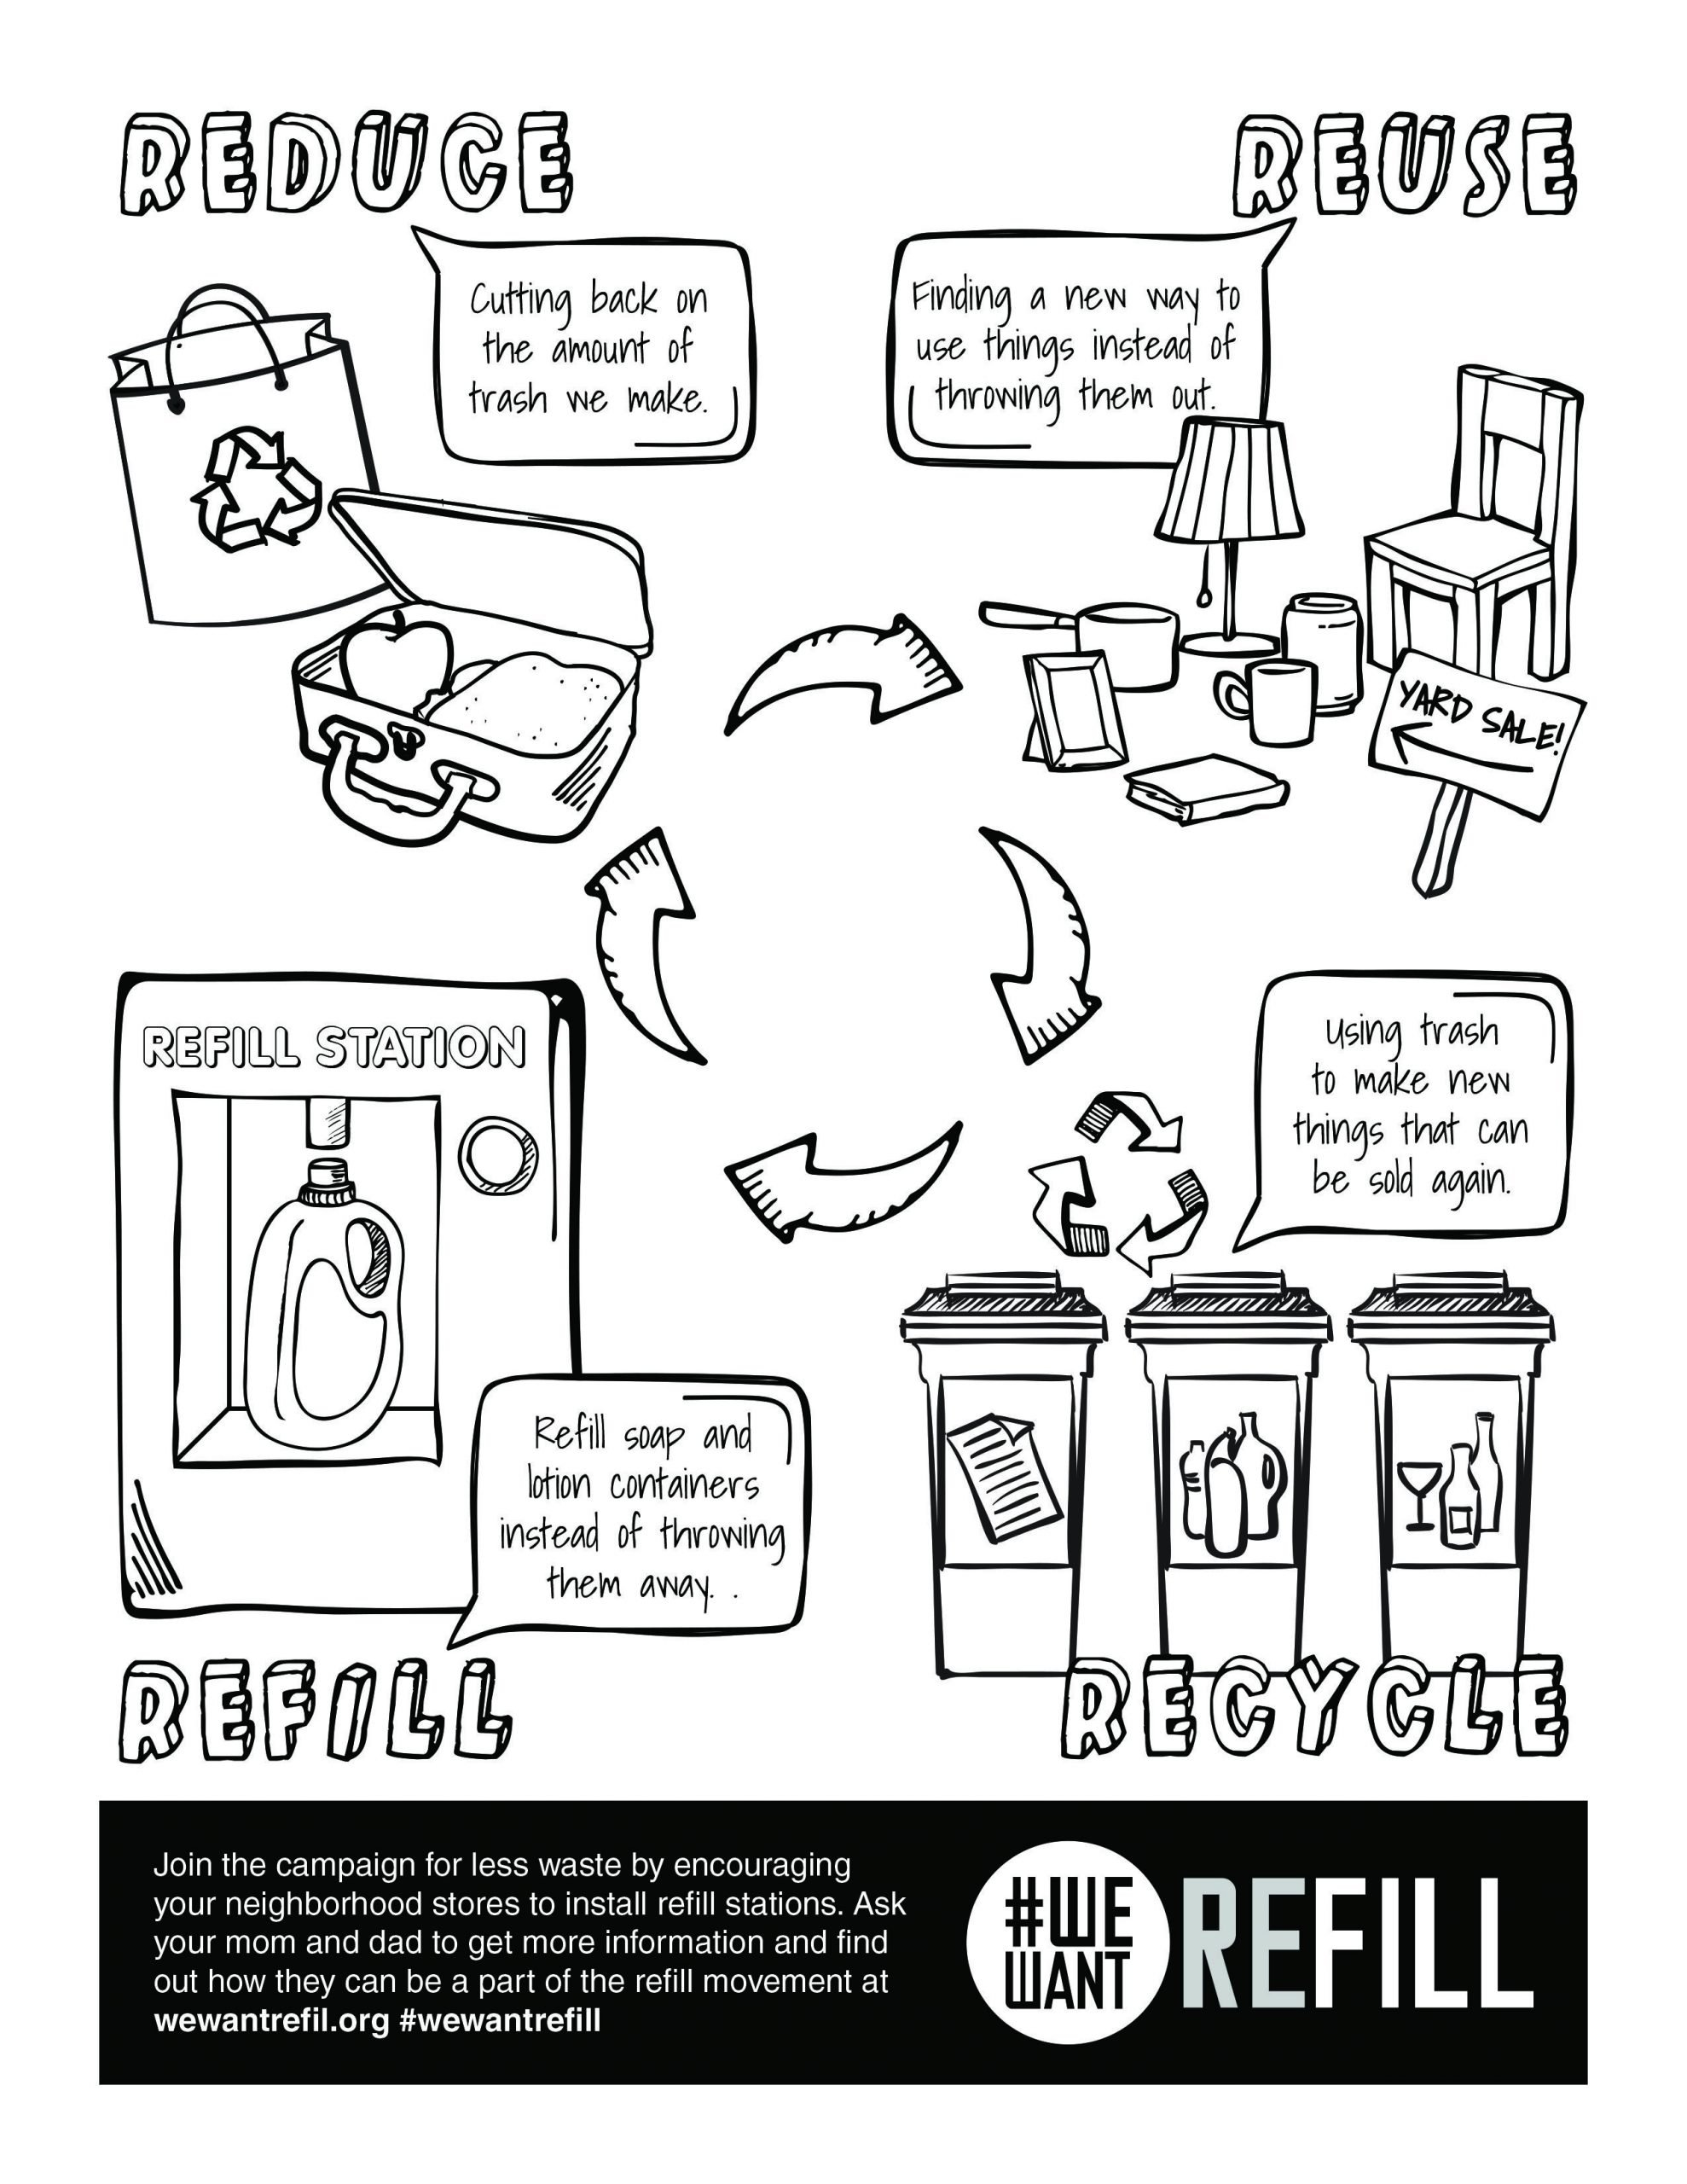 Free Recycling Worksheets Free Downloadable Coloring Page for Kids We Want Refill